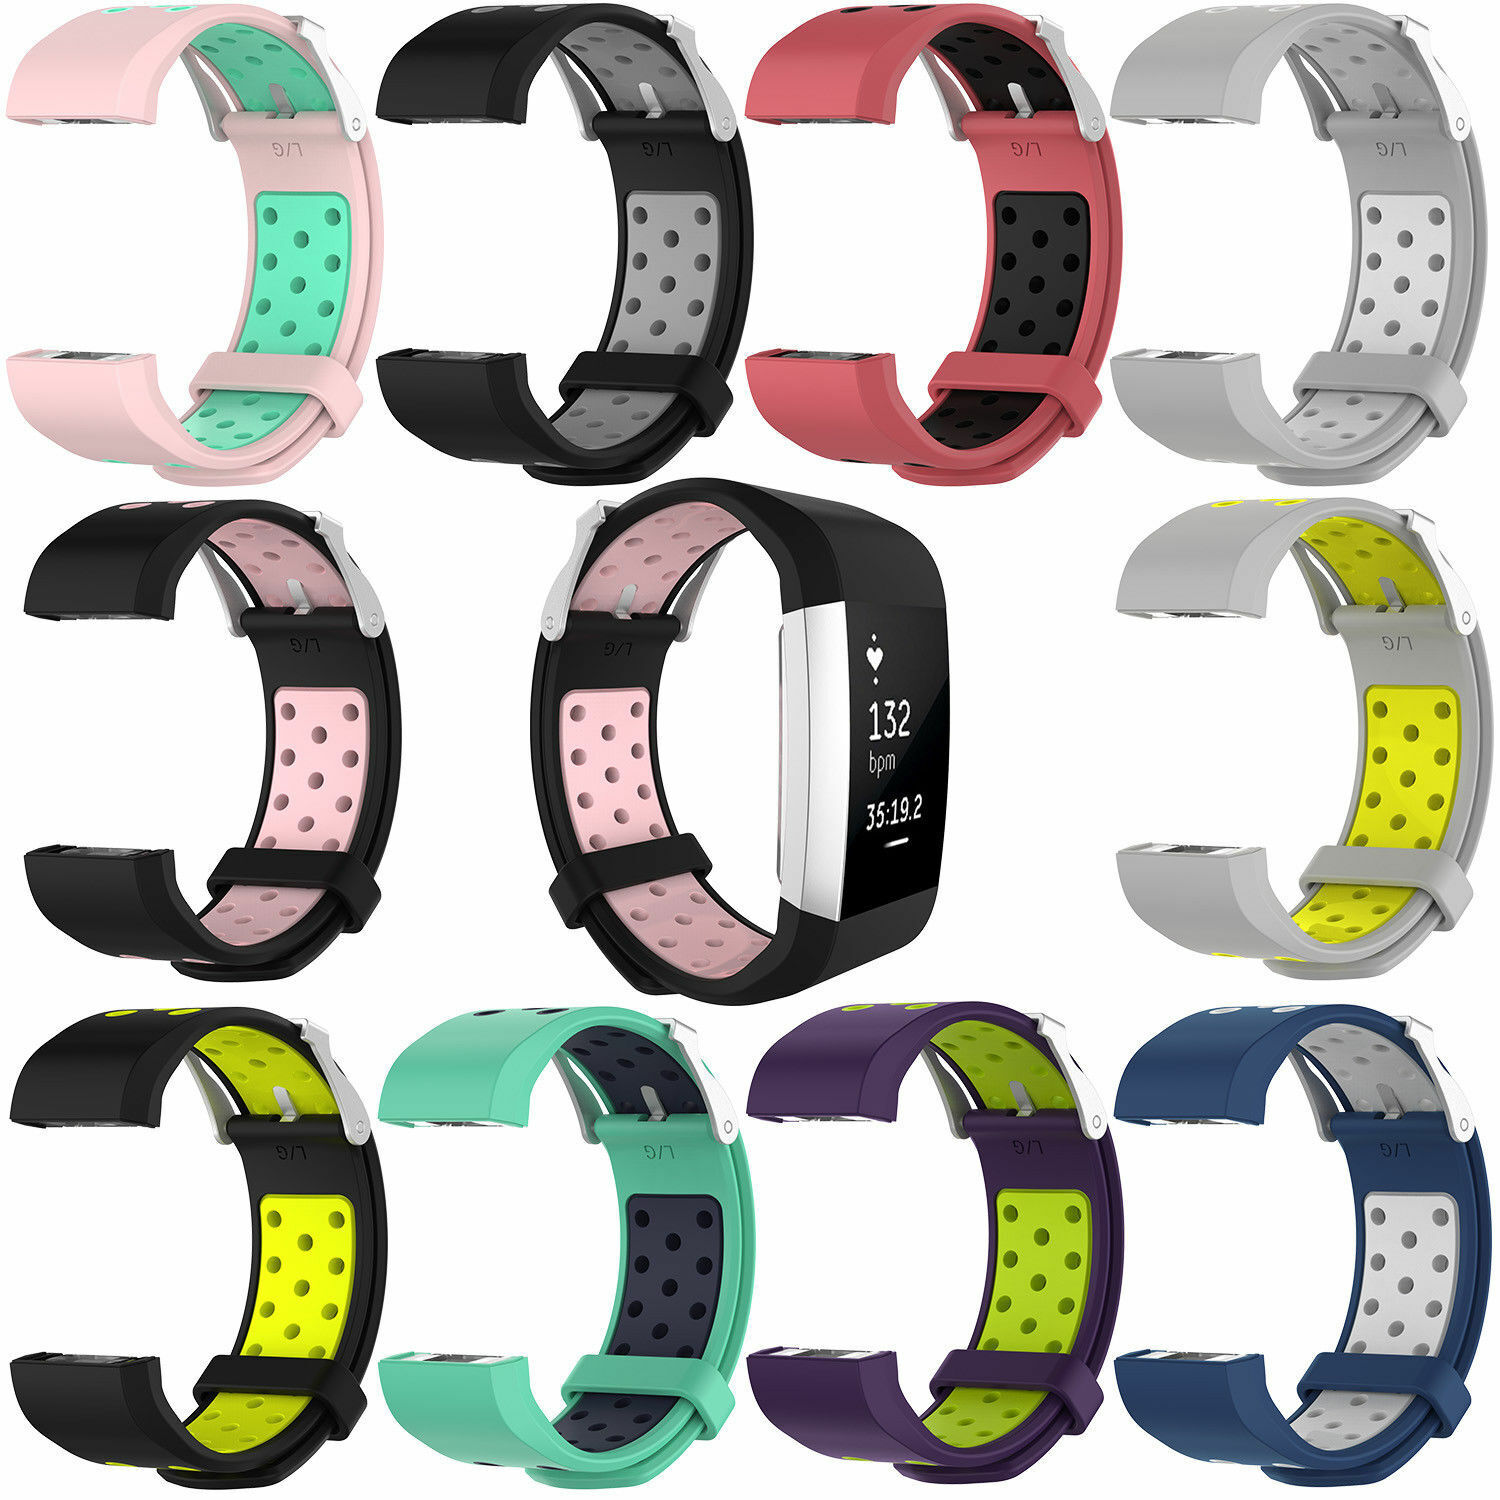 Replacement Silicone Sports Strap Wrist Band Bracelet For Fitbit Charge 2 / 2 HR 7